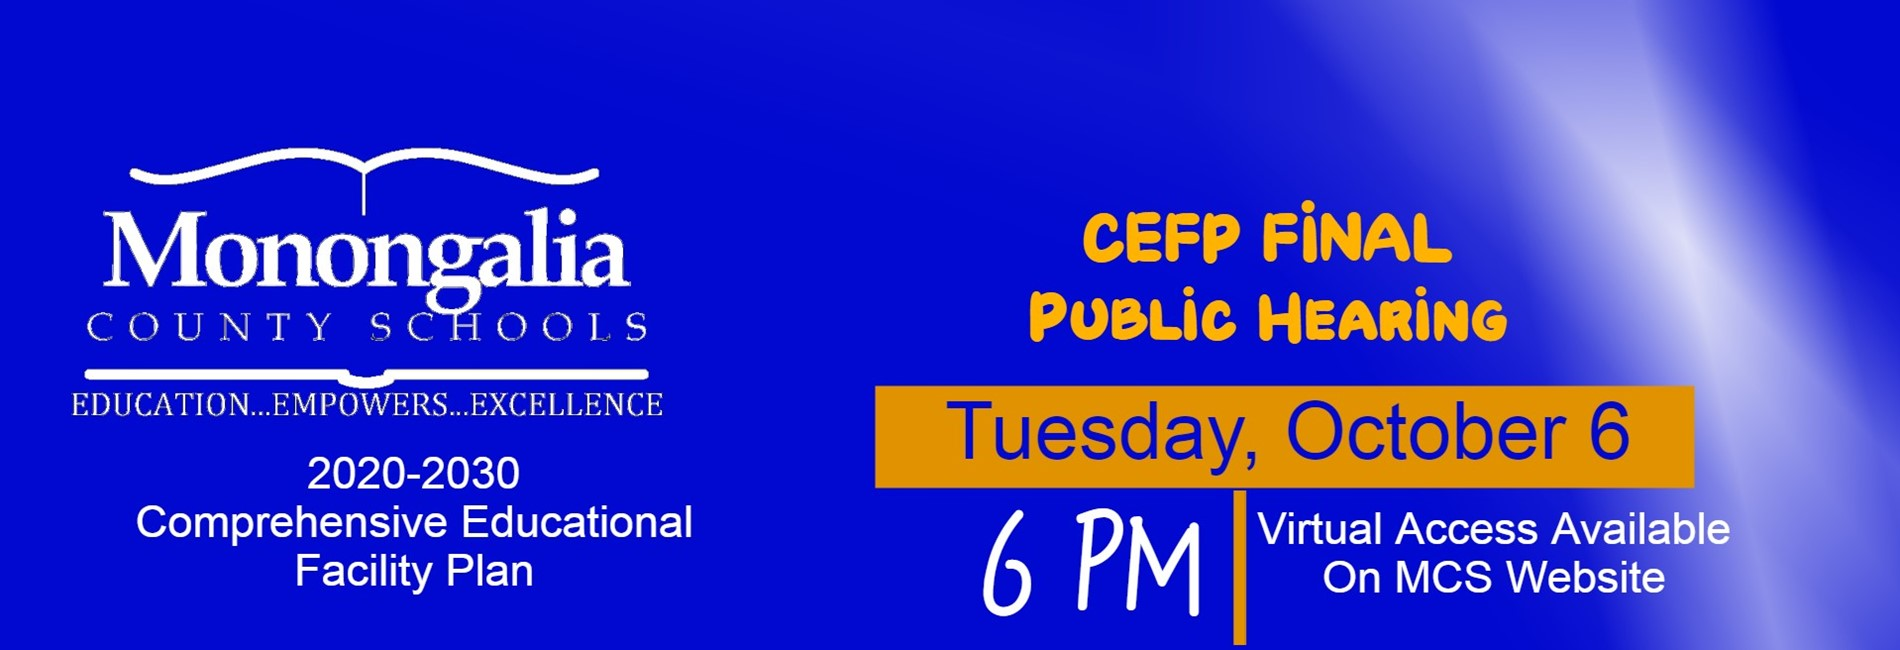 CEFP Public Hearing October 6 at 6pm